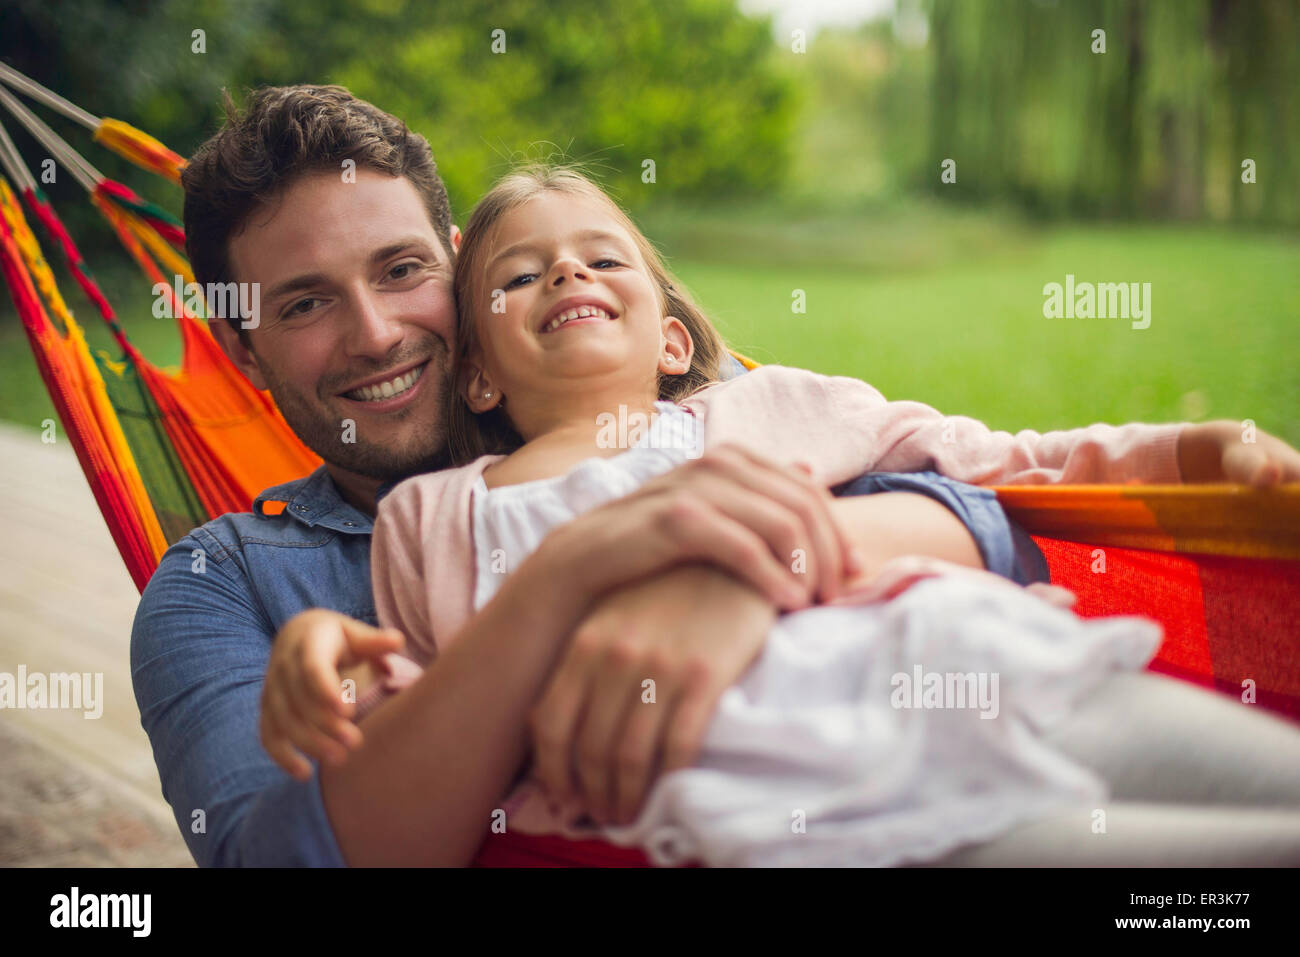 Father and daughter together in hammock - Stock Image